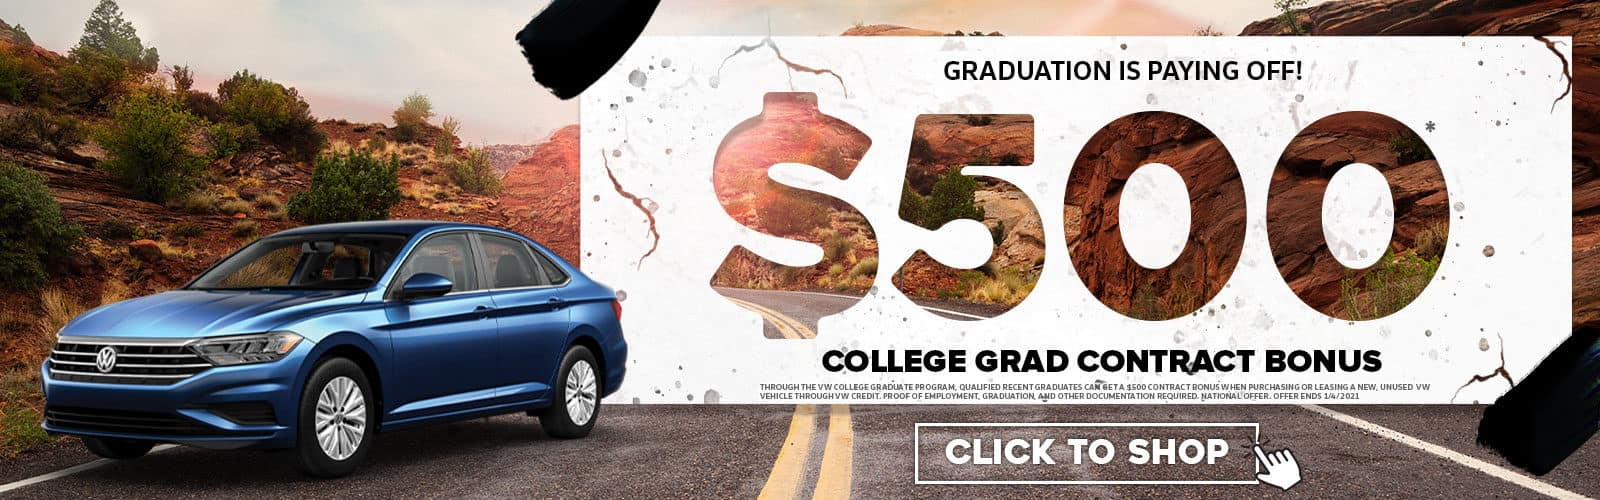 7_20_Wyoming_Valley_VW_Web_Banners-2020-College